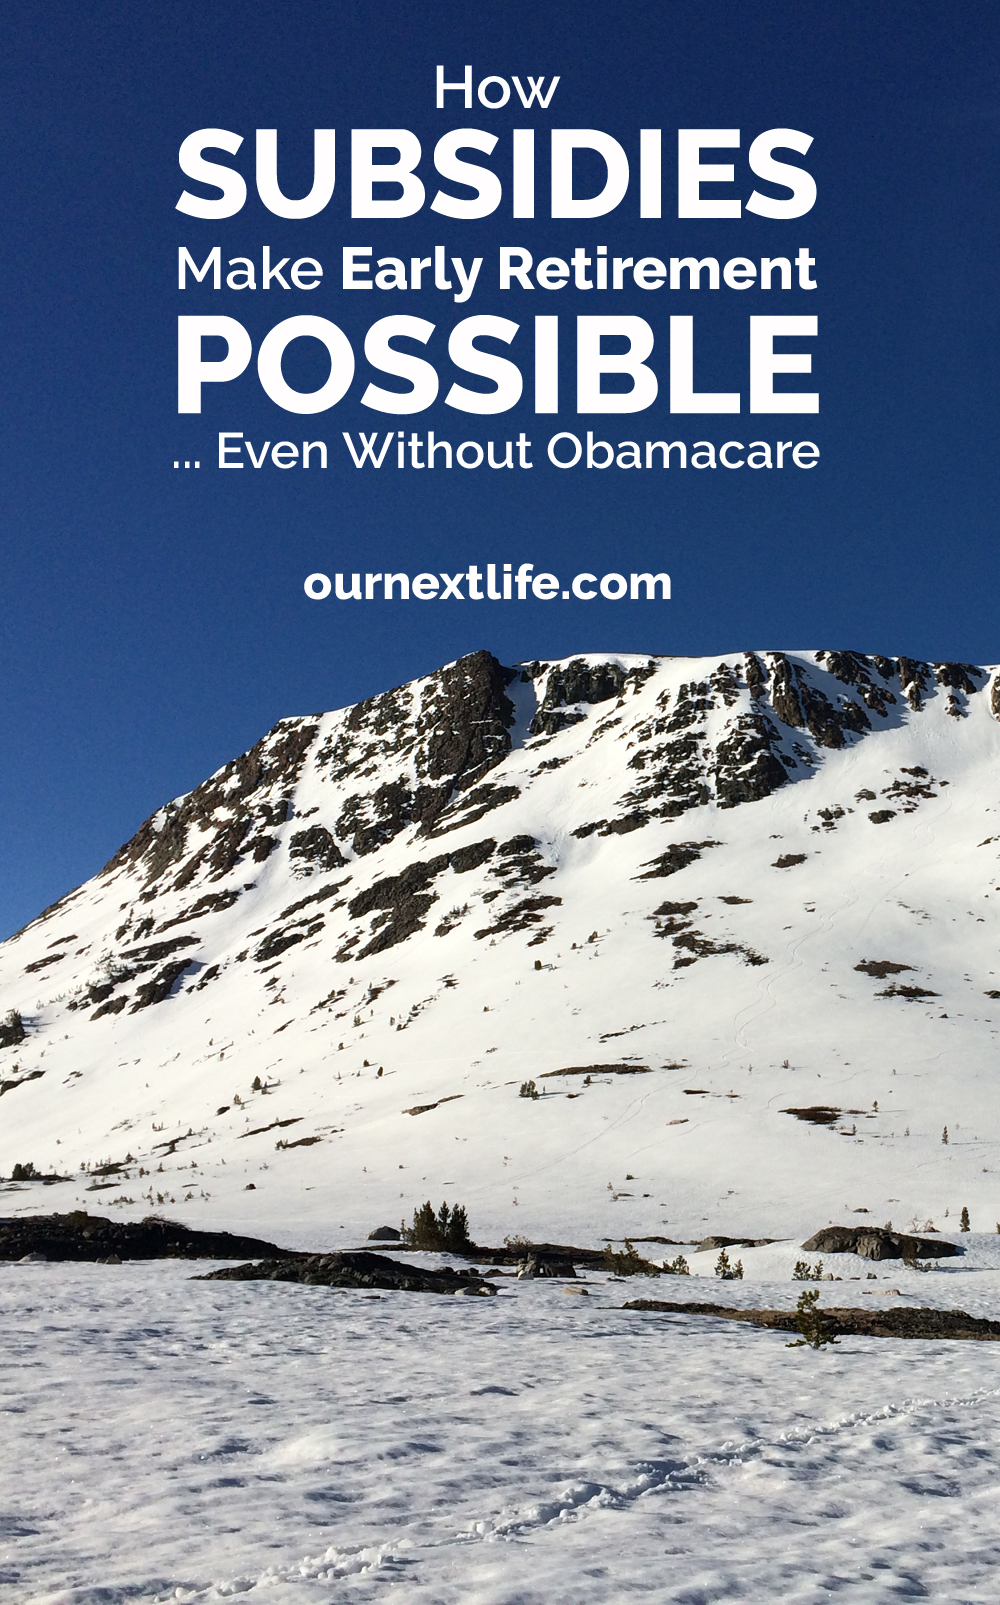 OurNextLife.com // How subsidies make early retirement possible, even without Obamacare // Poor subsidizing the rich / Tax breaks to build wealth